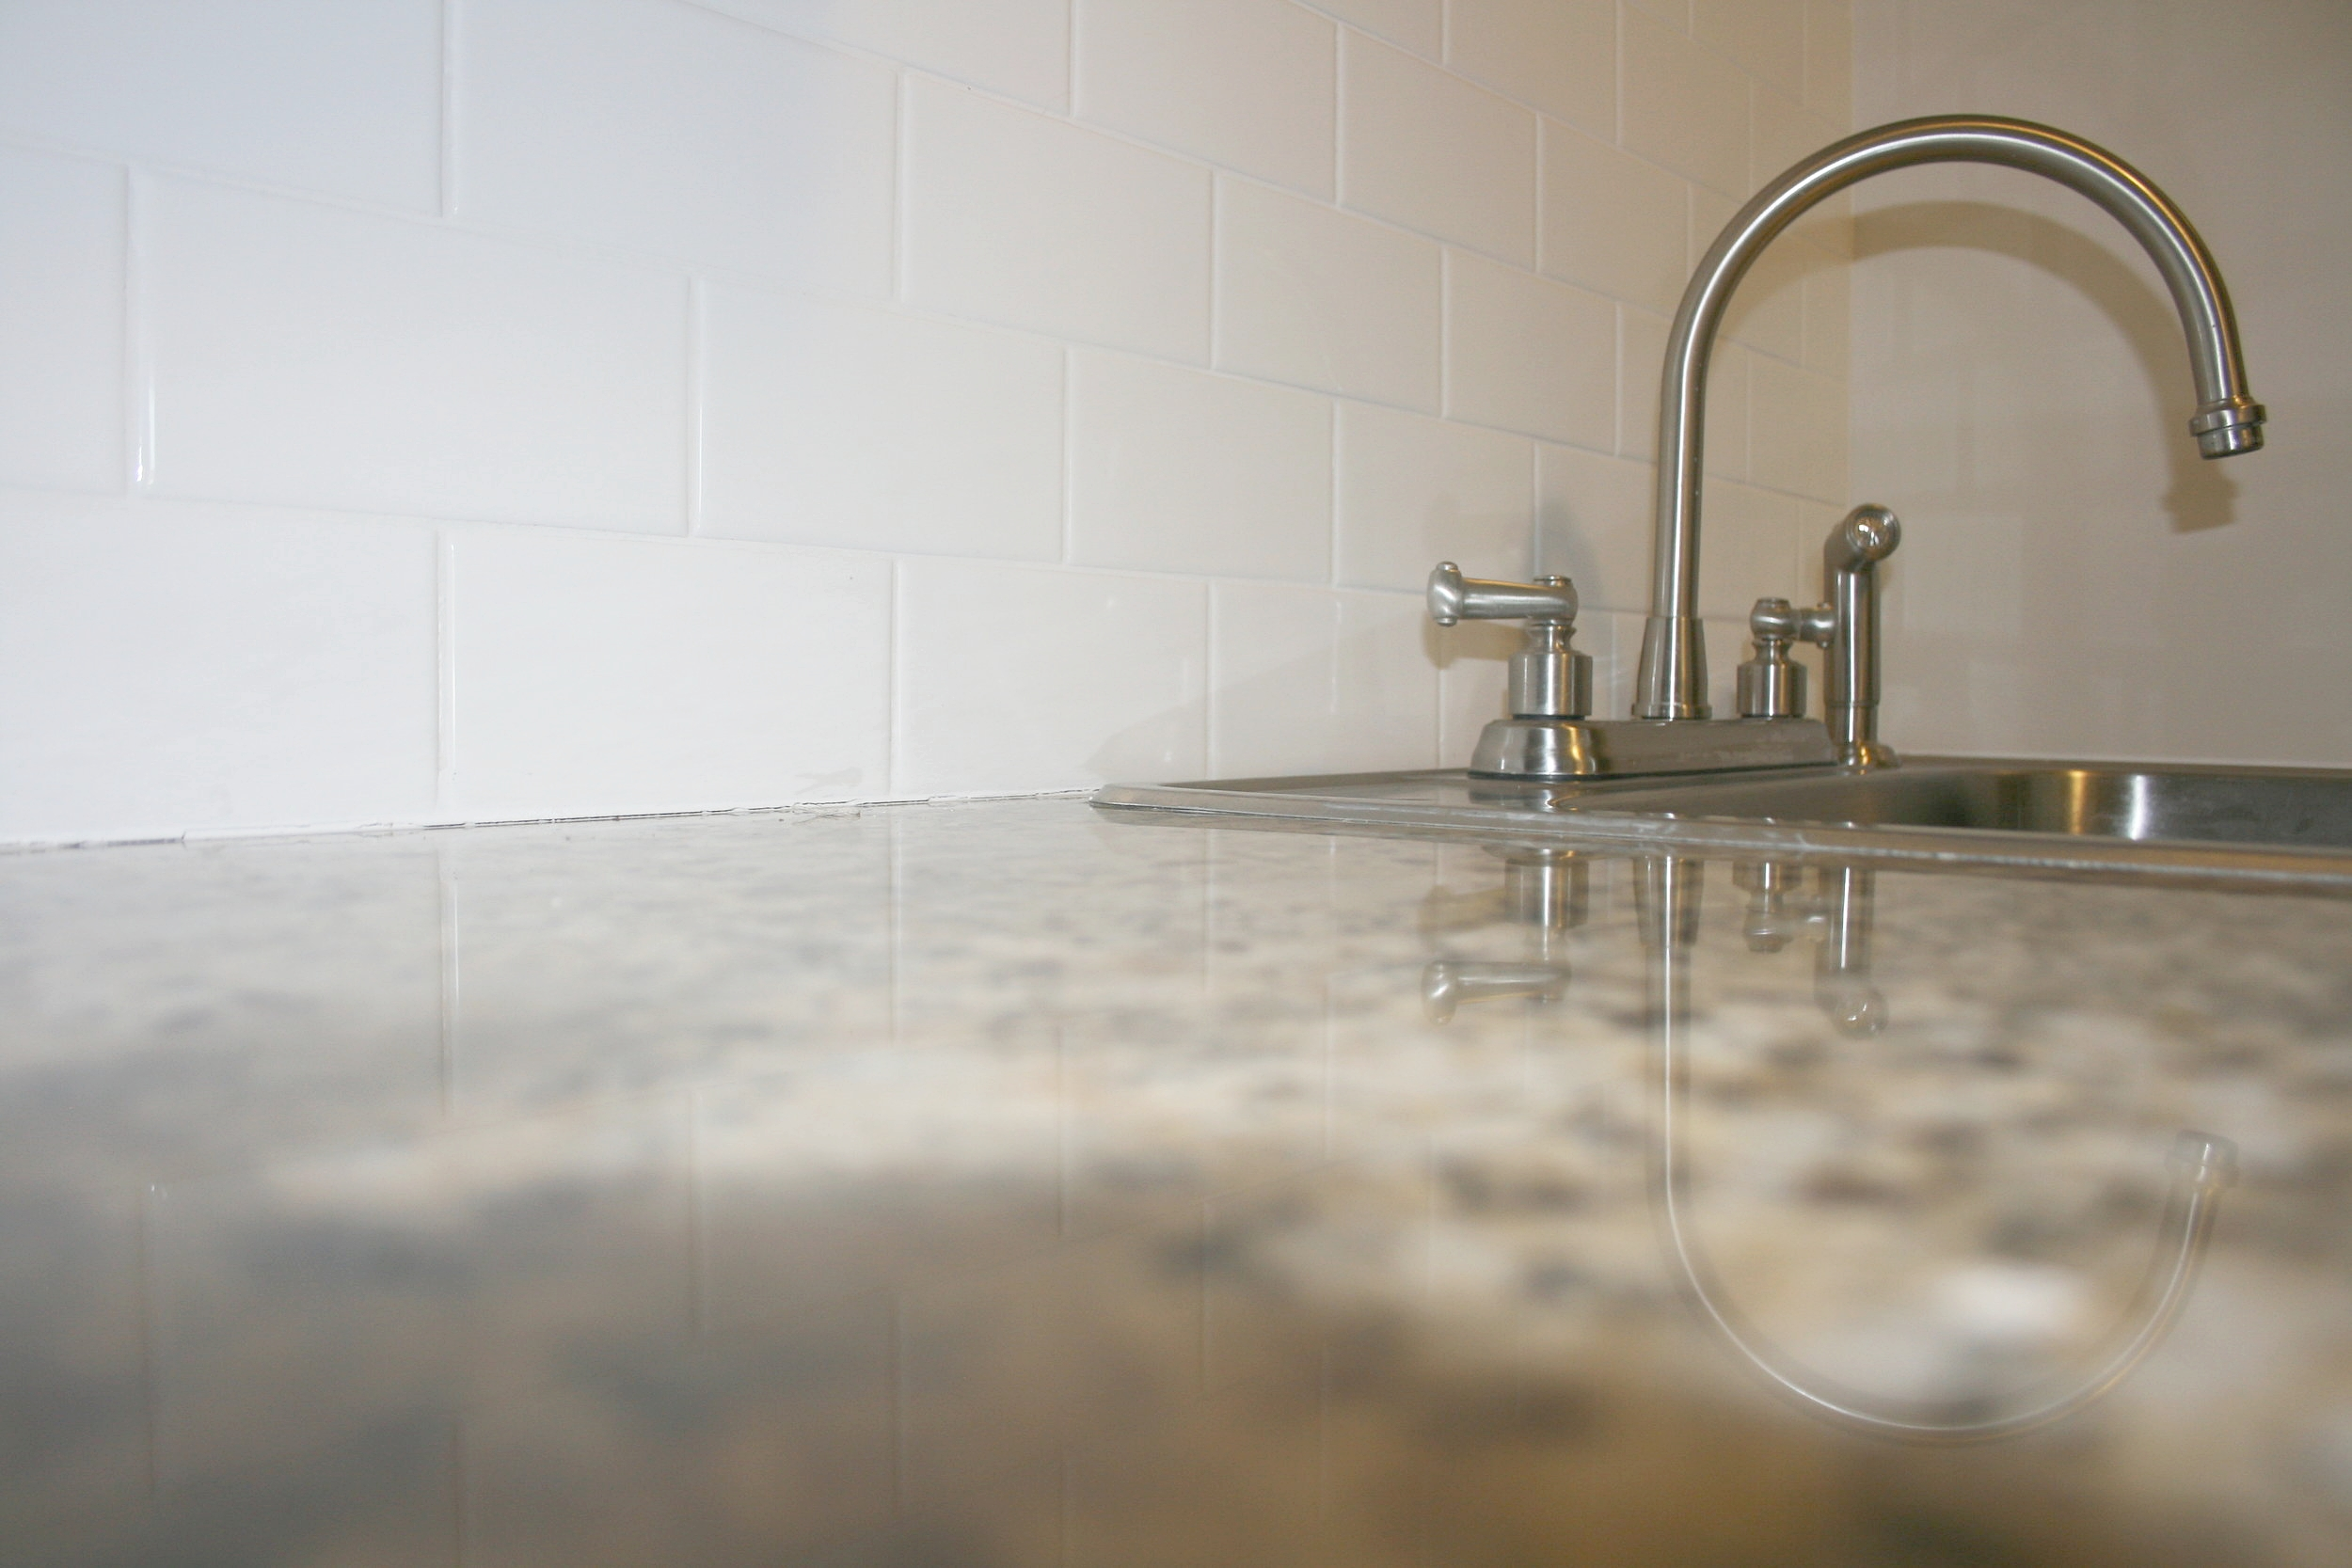 Granite countertops with stainless steel features